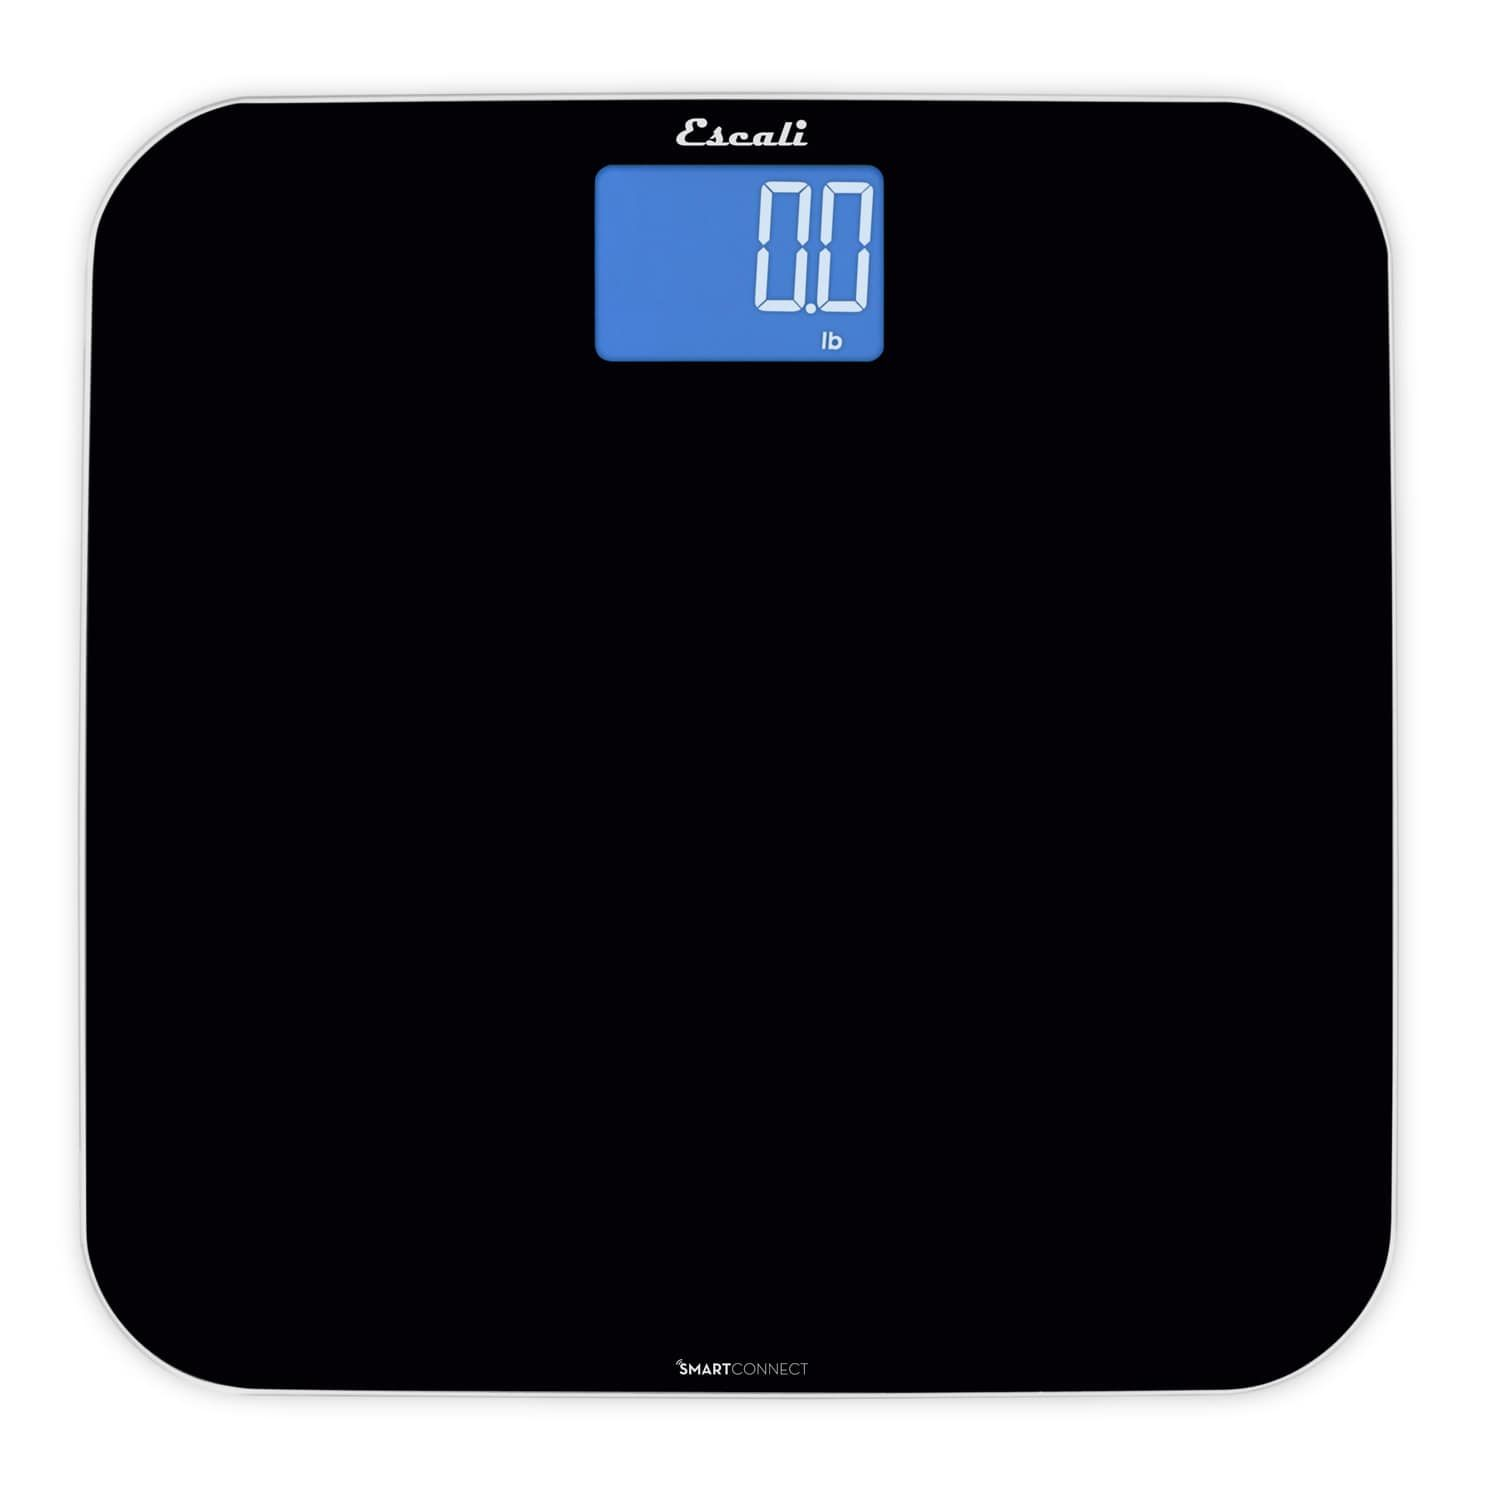 Escali Smartconnect Bathroom Scale Smartconnect Escali Scale Bathroom Escali Bathroom Scale Bathroom